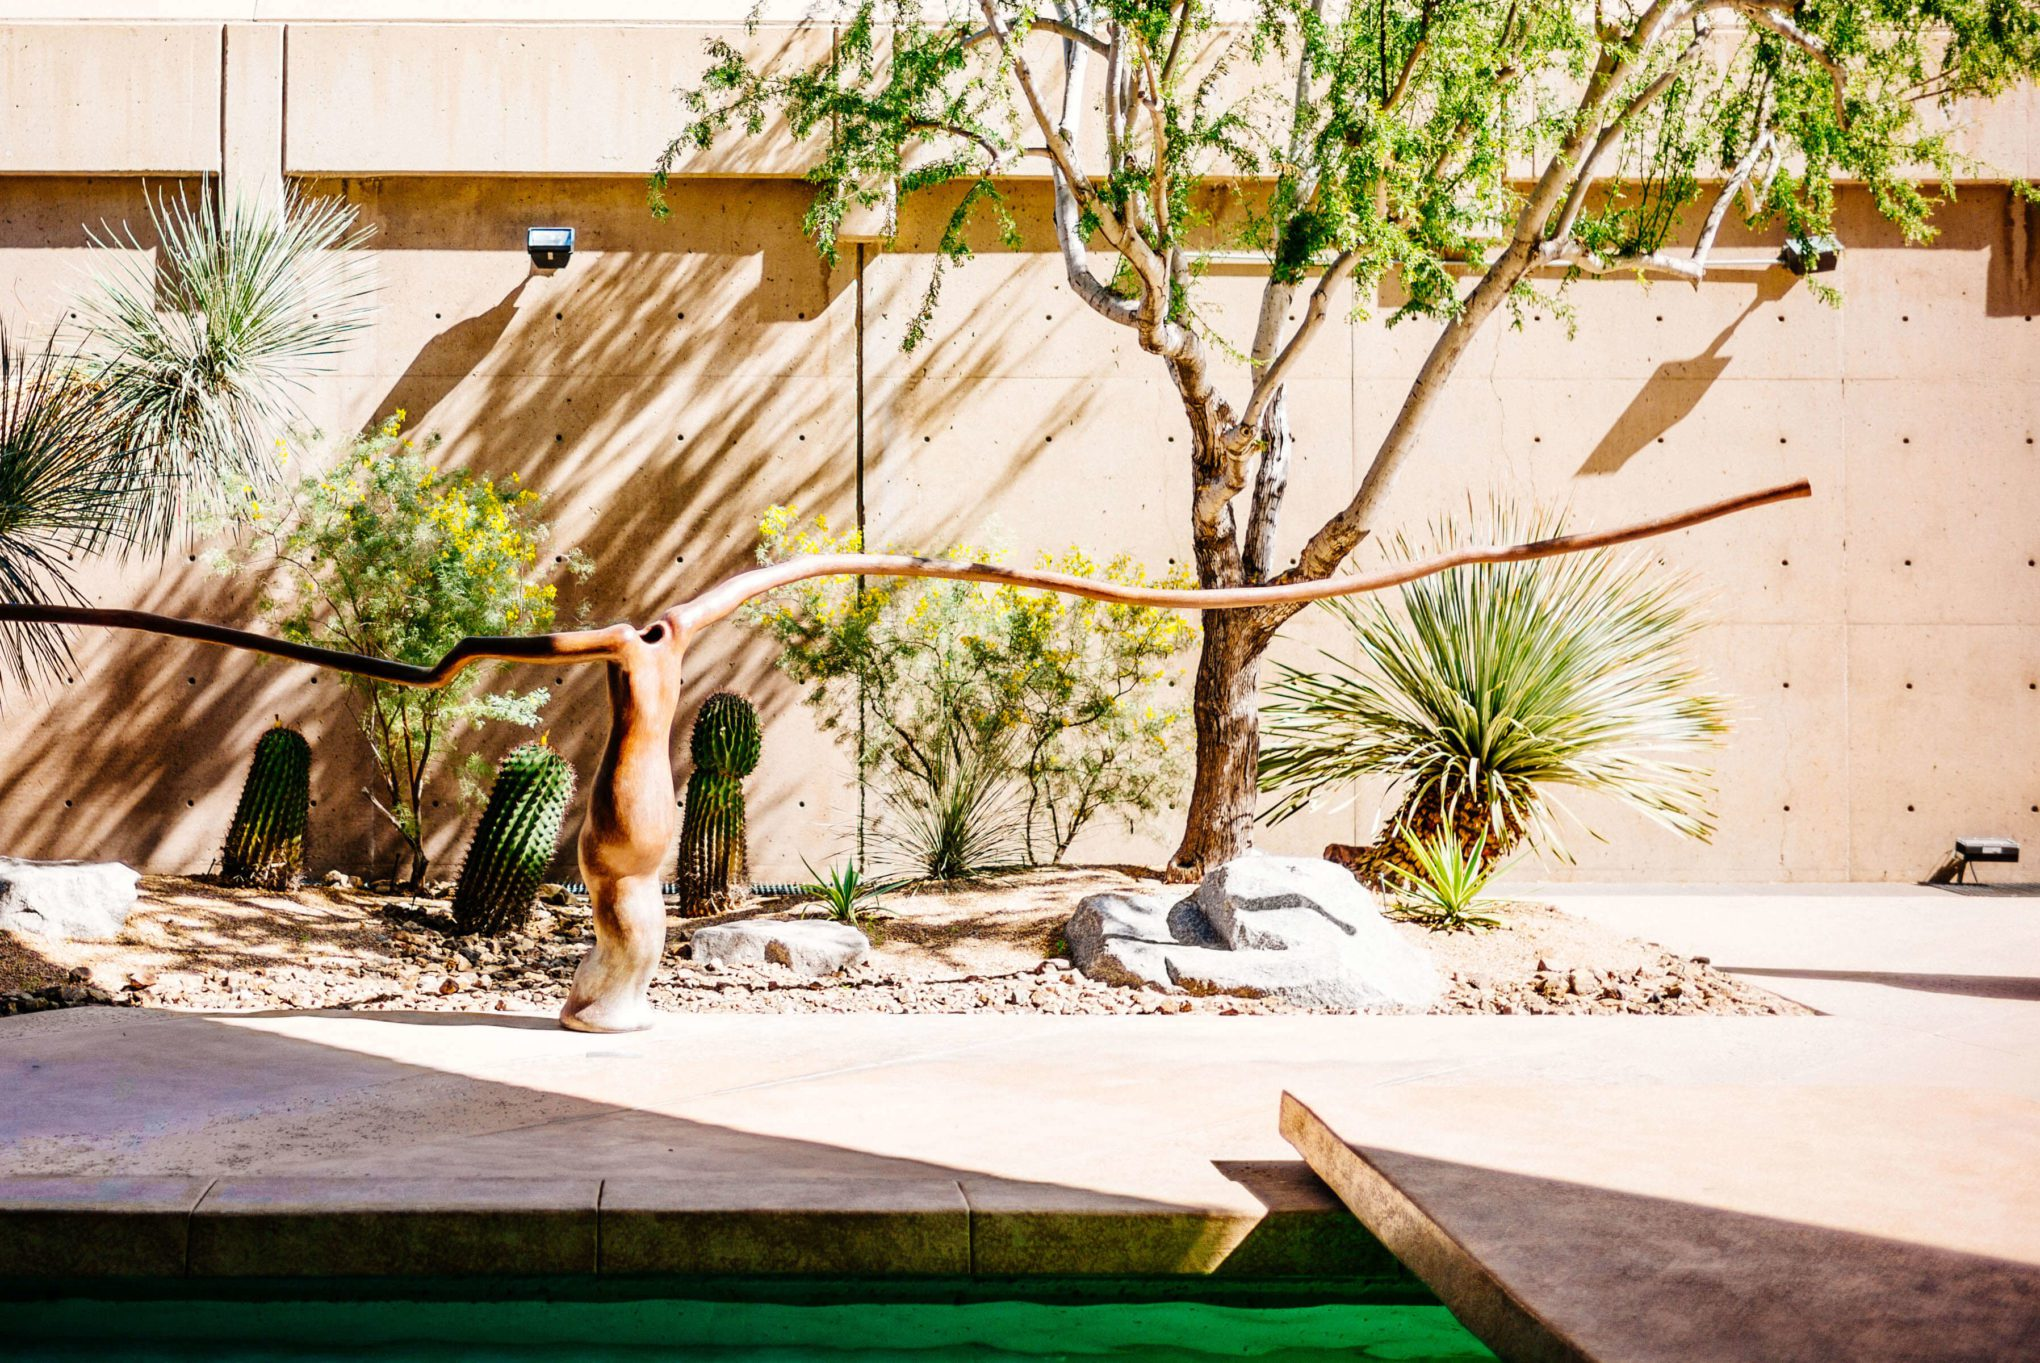 You should visit the sculpture garden at the Palm Springs Art Museum, The Taste Edit